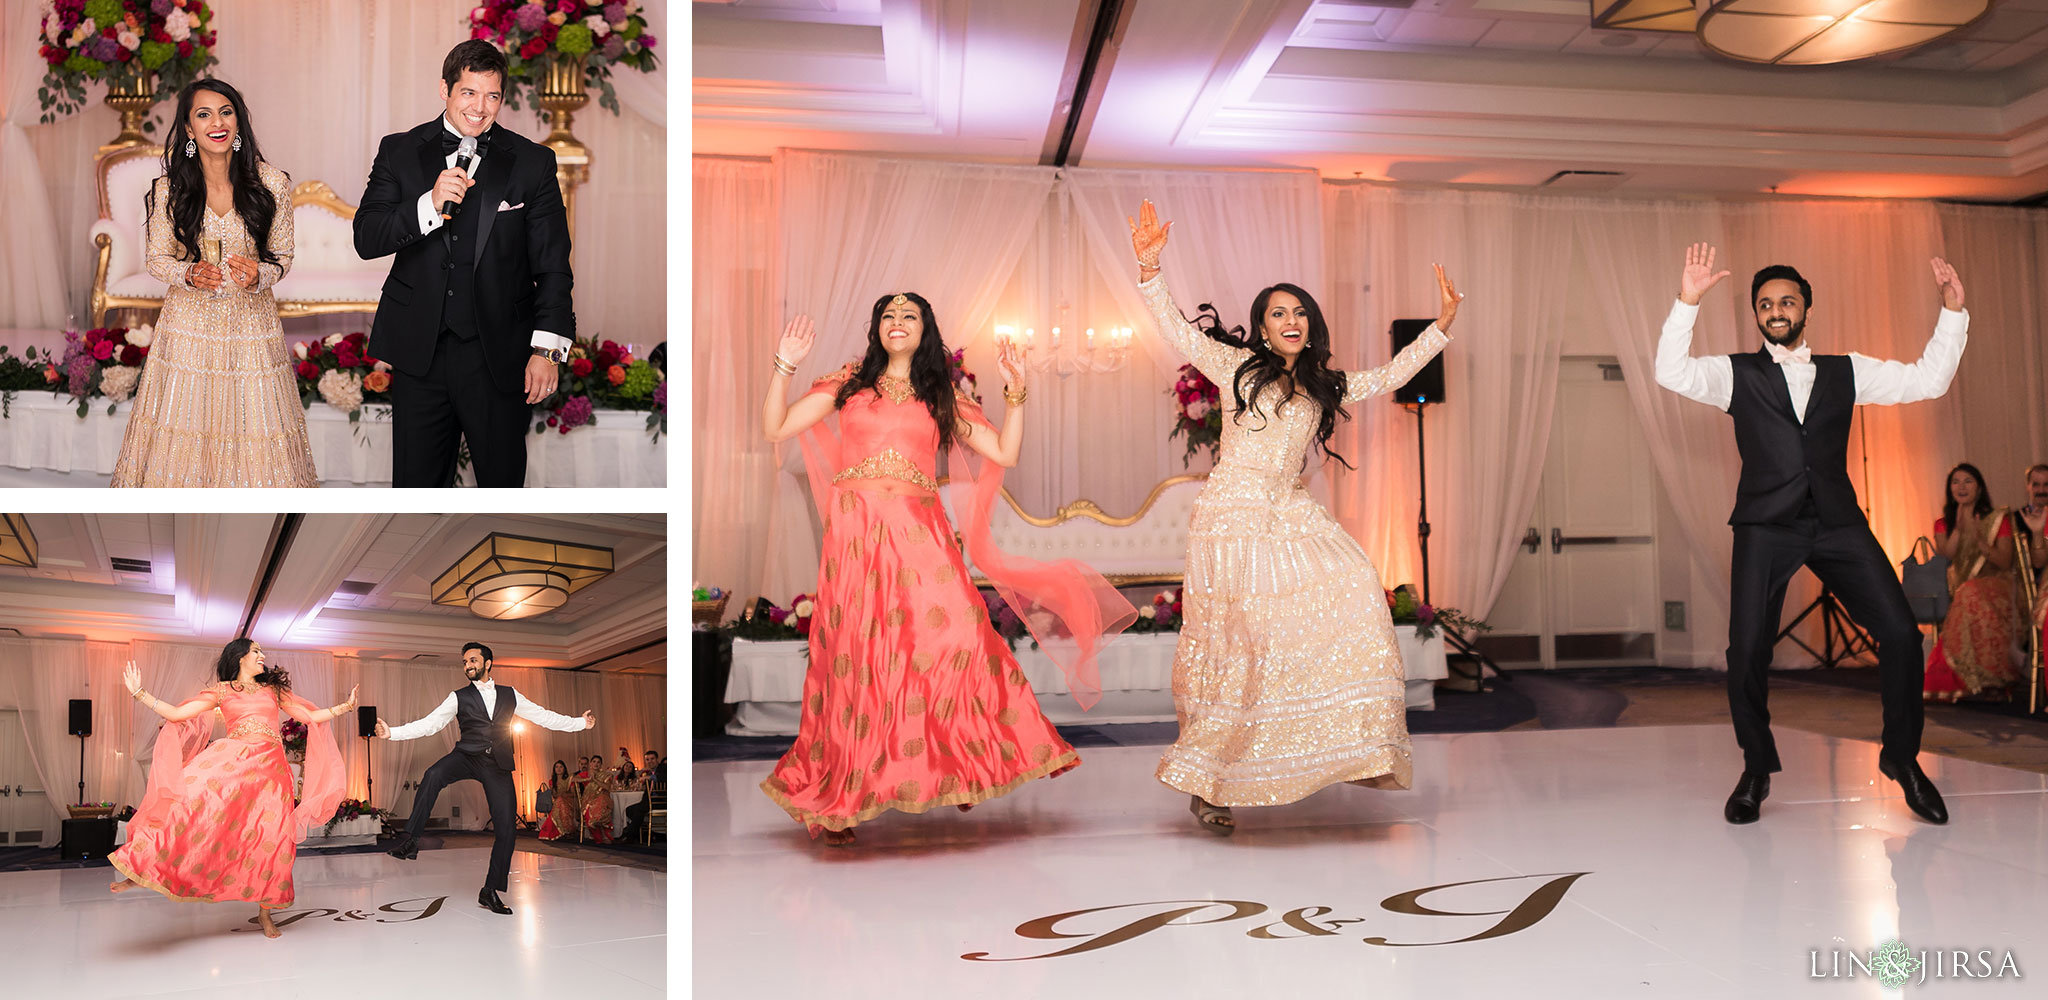 56 newport beach marriott hotel indian wedding reception photography